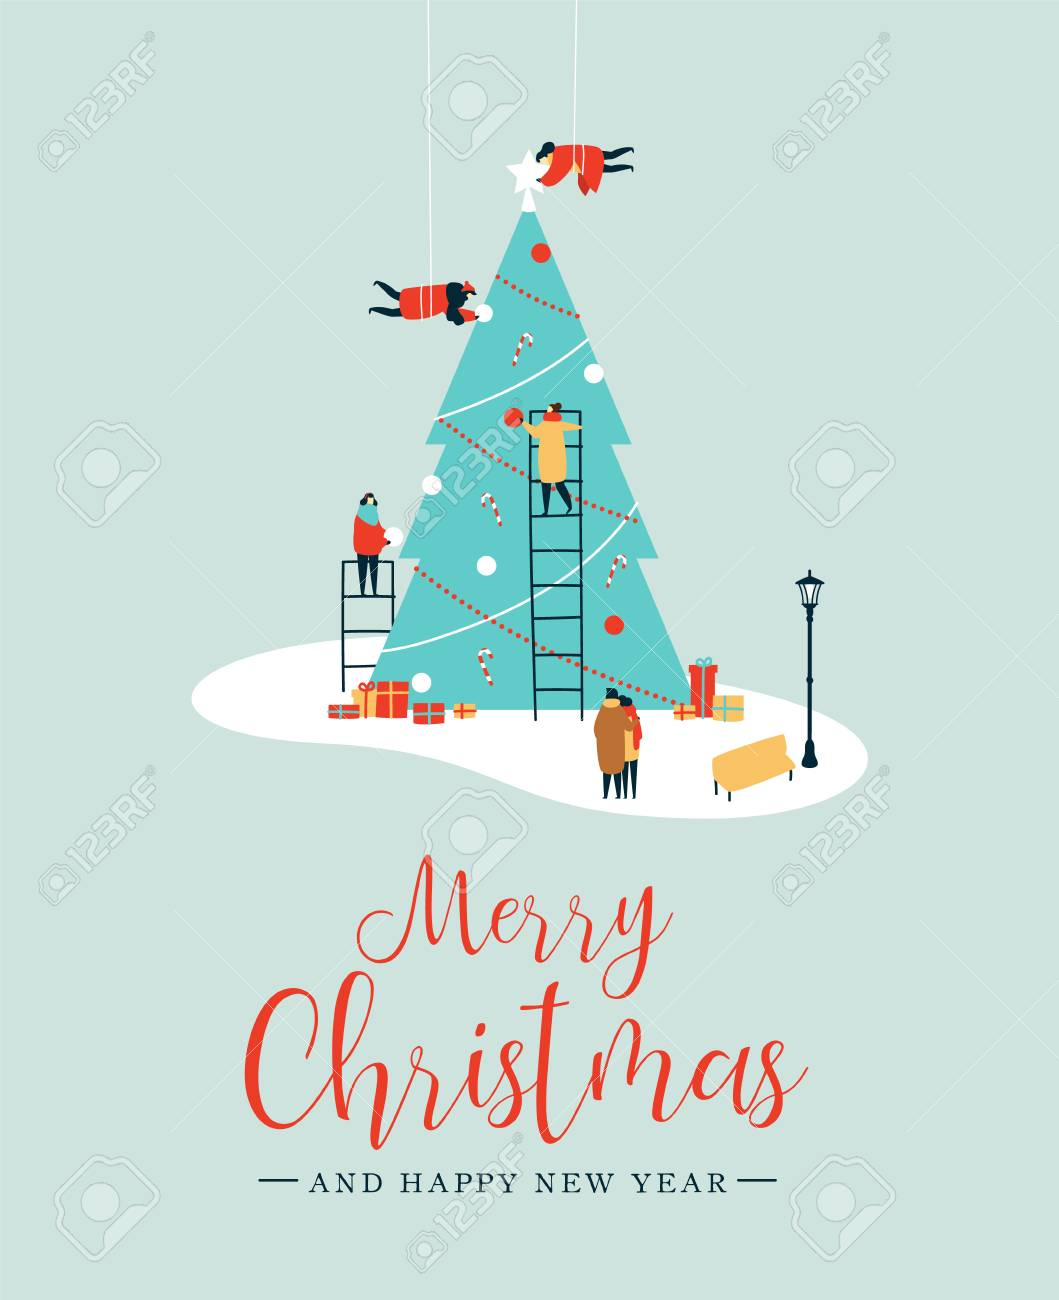 Merry Christmas and Happy New Year greeting card, People group making big xmas pine tree together for holiday season with ornament decoration, gifts. EPS10 vector. - 113543263